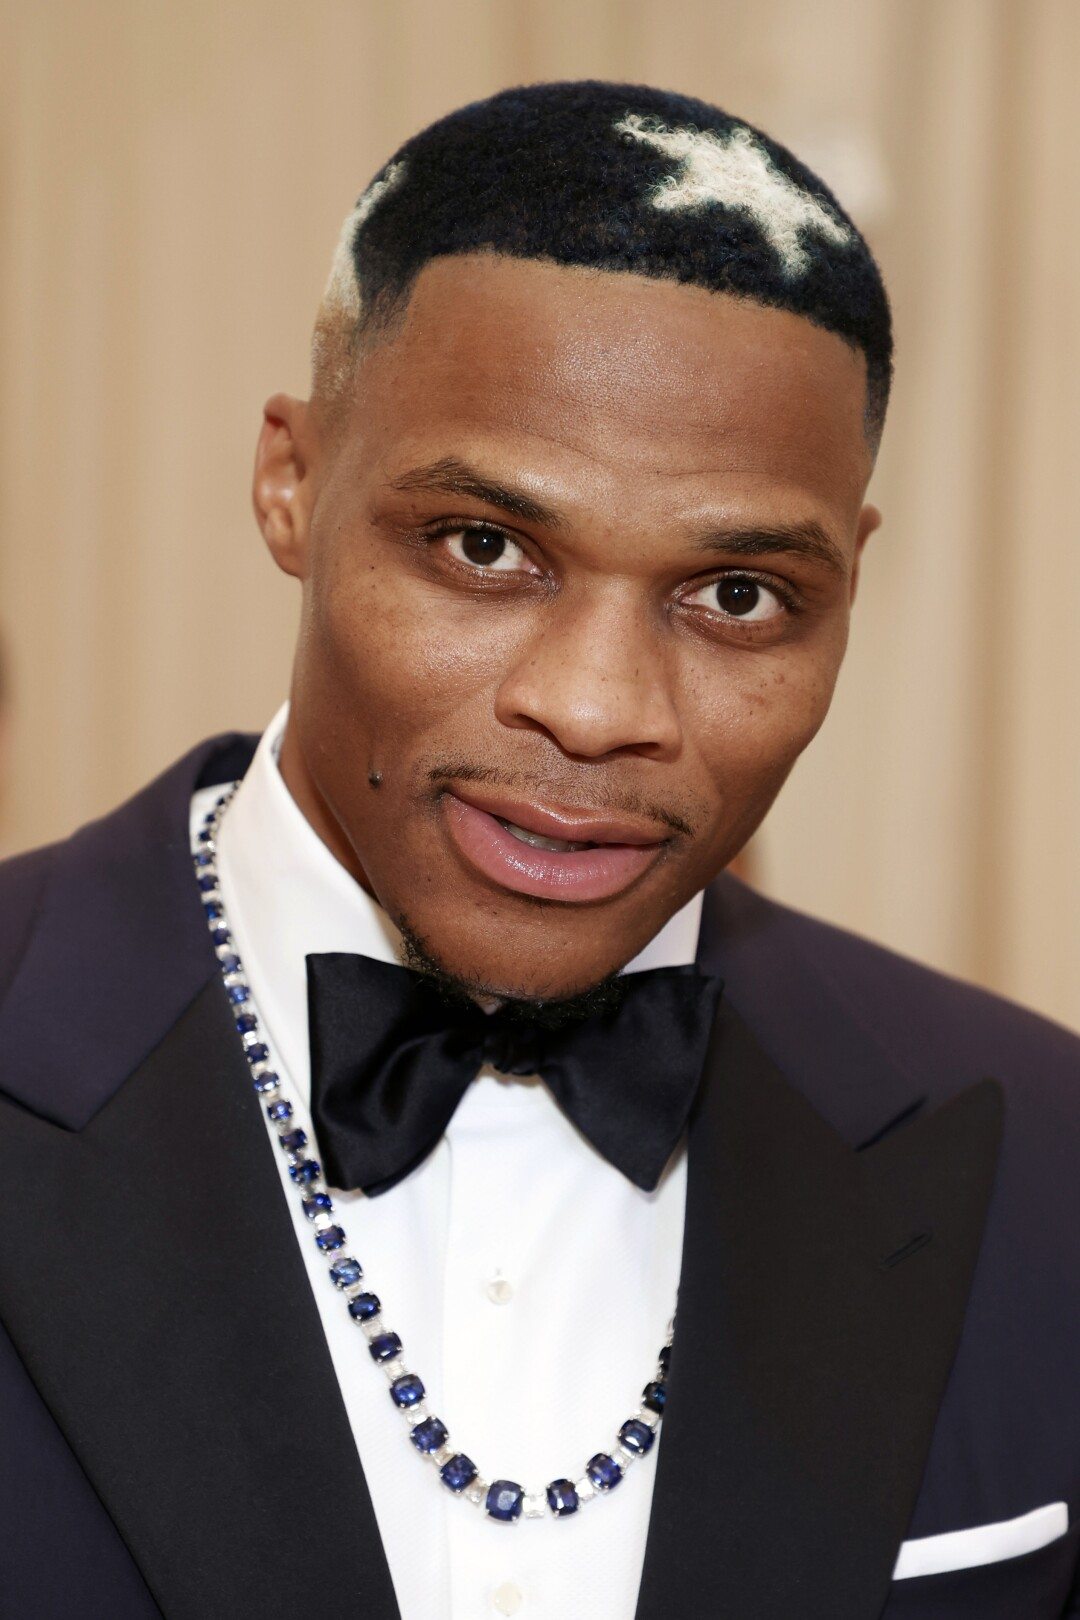 A man in a tuxedo with a star dyed into his hair